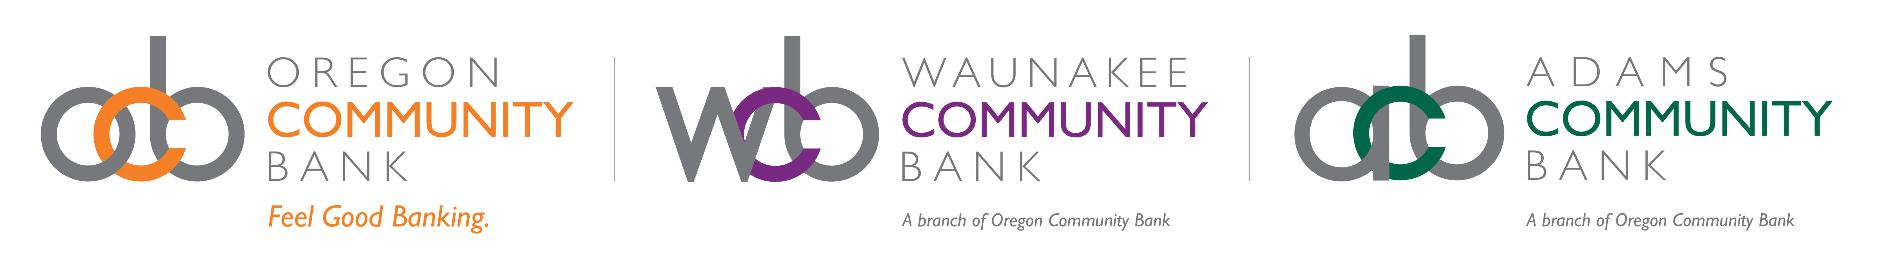 Oregon Community Bank